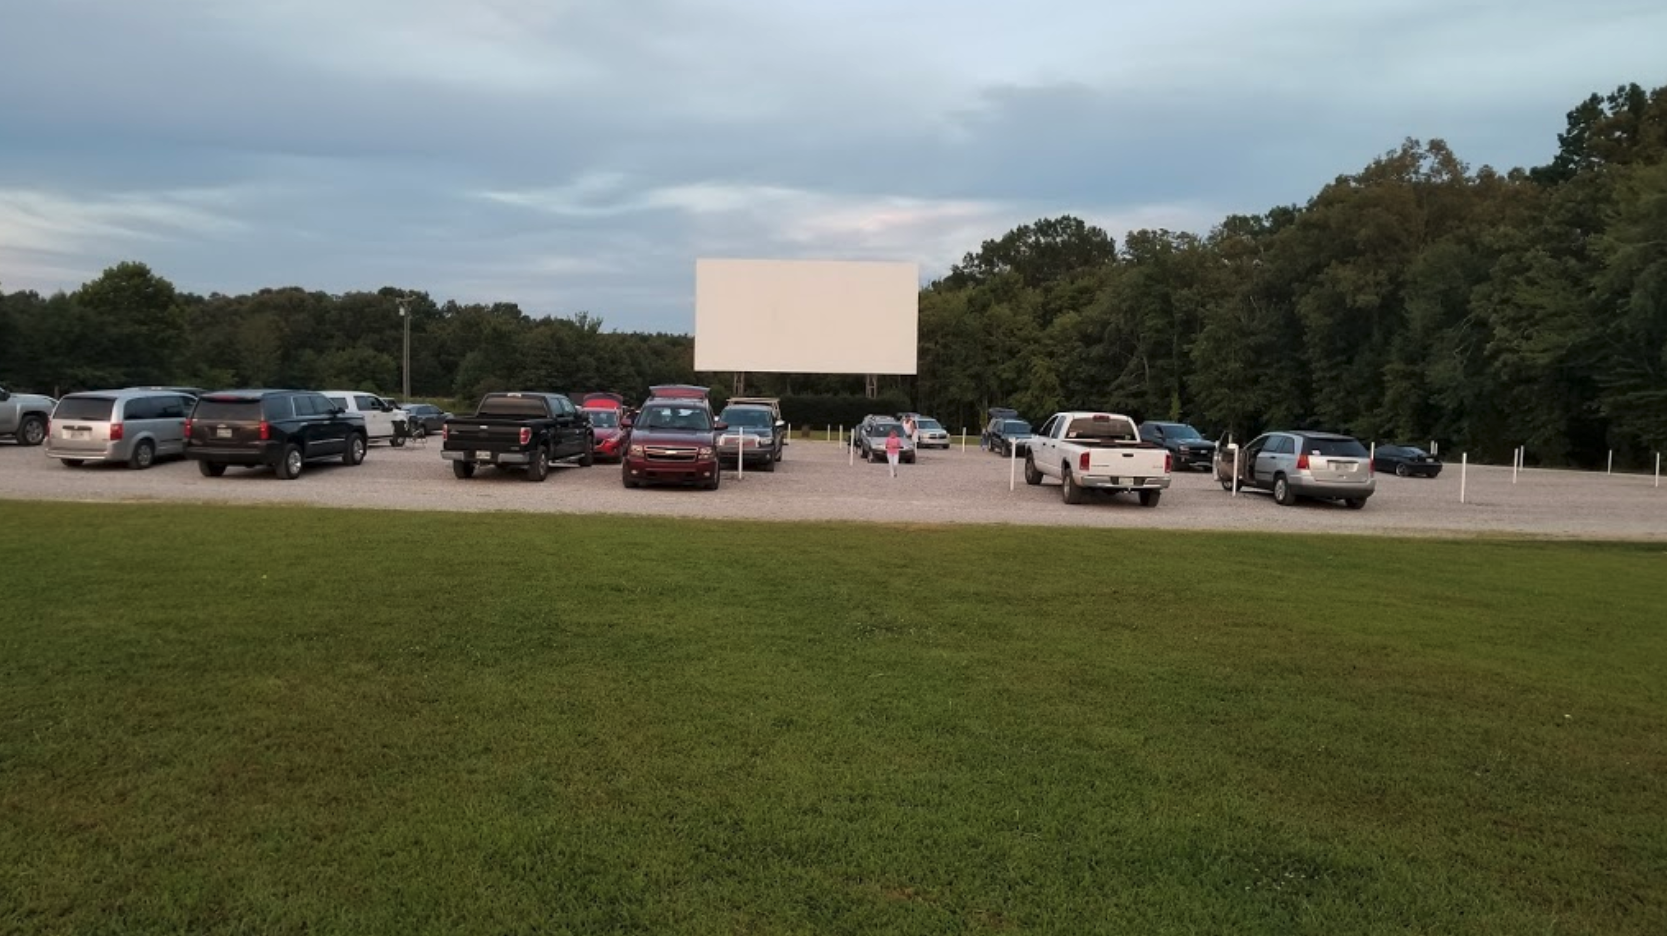 Escape The City With A Date Night To The Montana Drive-In Theater Just A Short Drive From Nashville